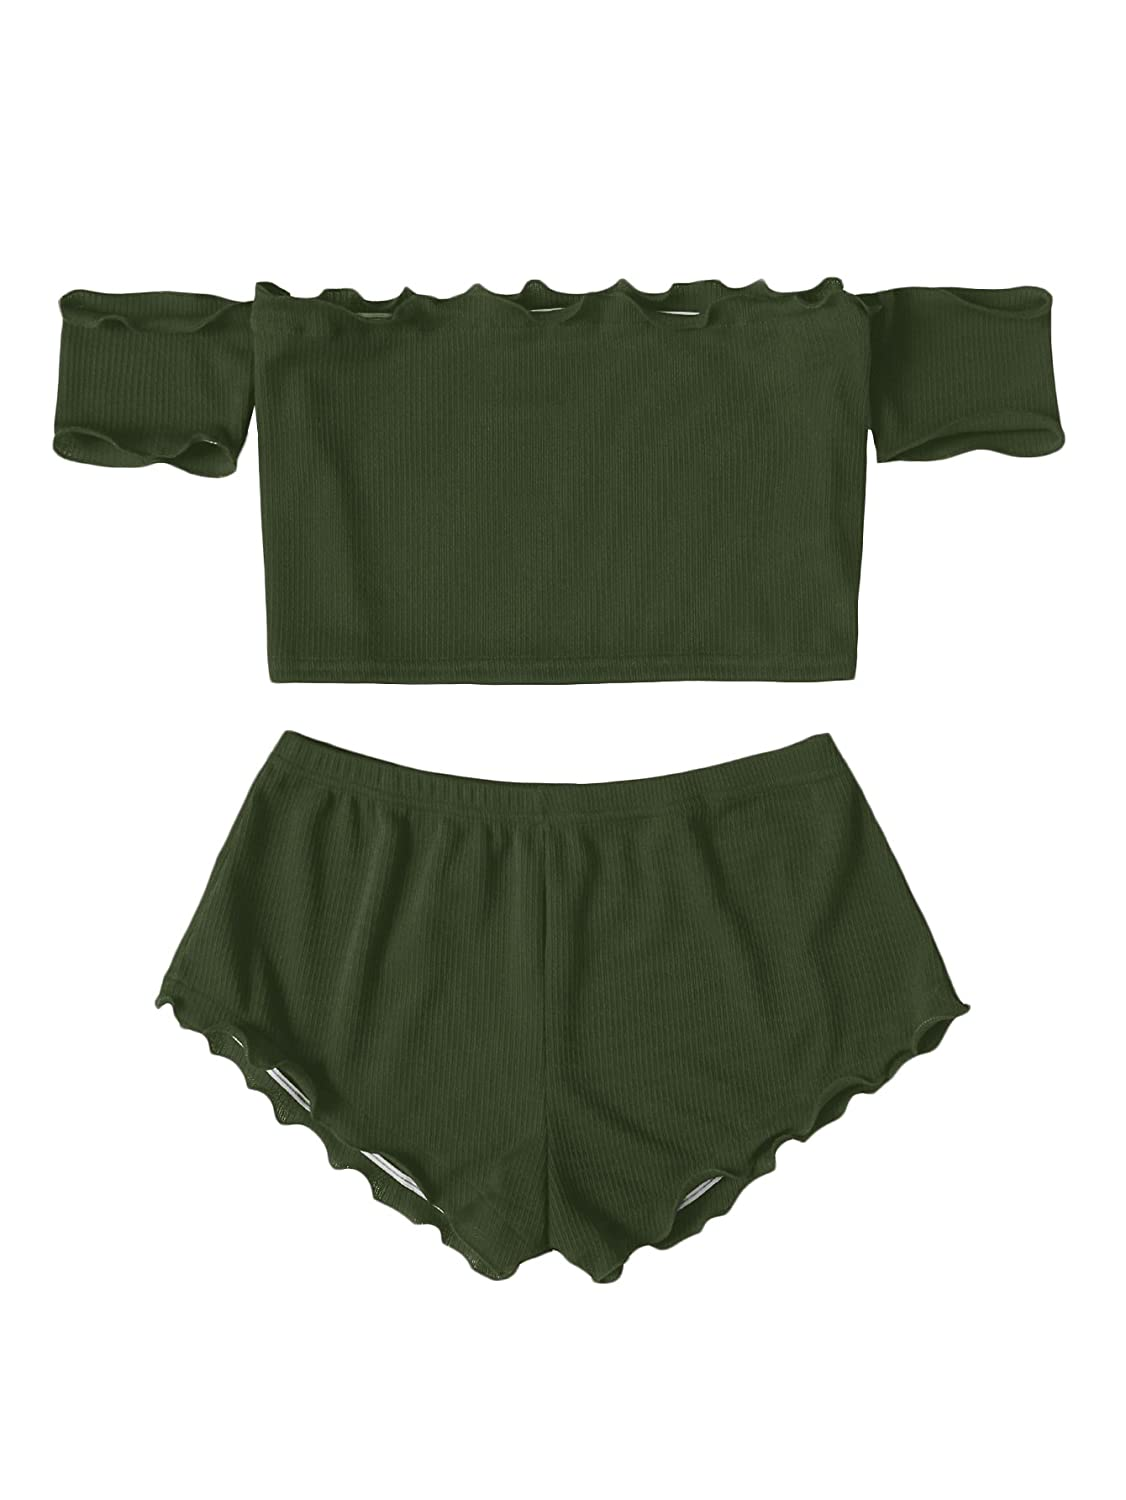 922709bec0b Amazon.com: Romwe Women's Off The Shoulder Lettuce Edge Crop Top with  Shorts Ribbed Romper and Jumpsuit Army-Green L: Clothing